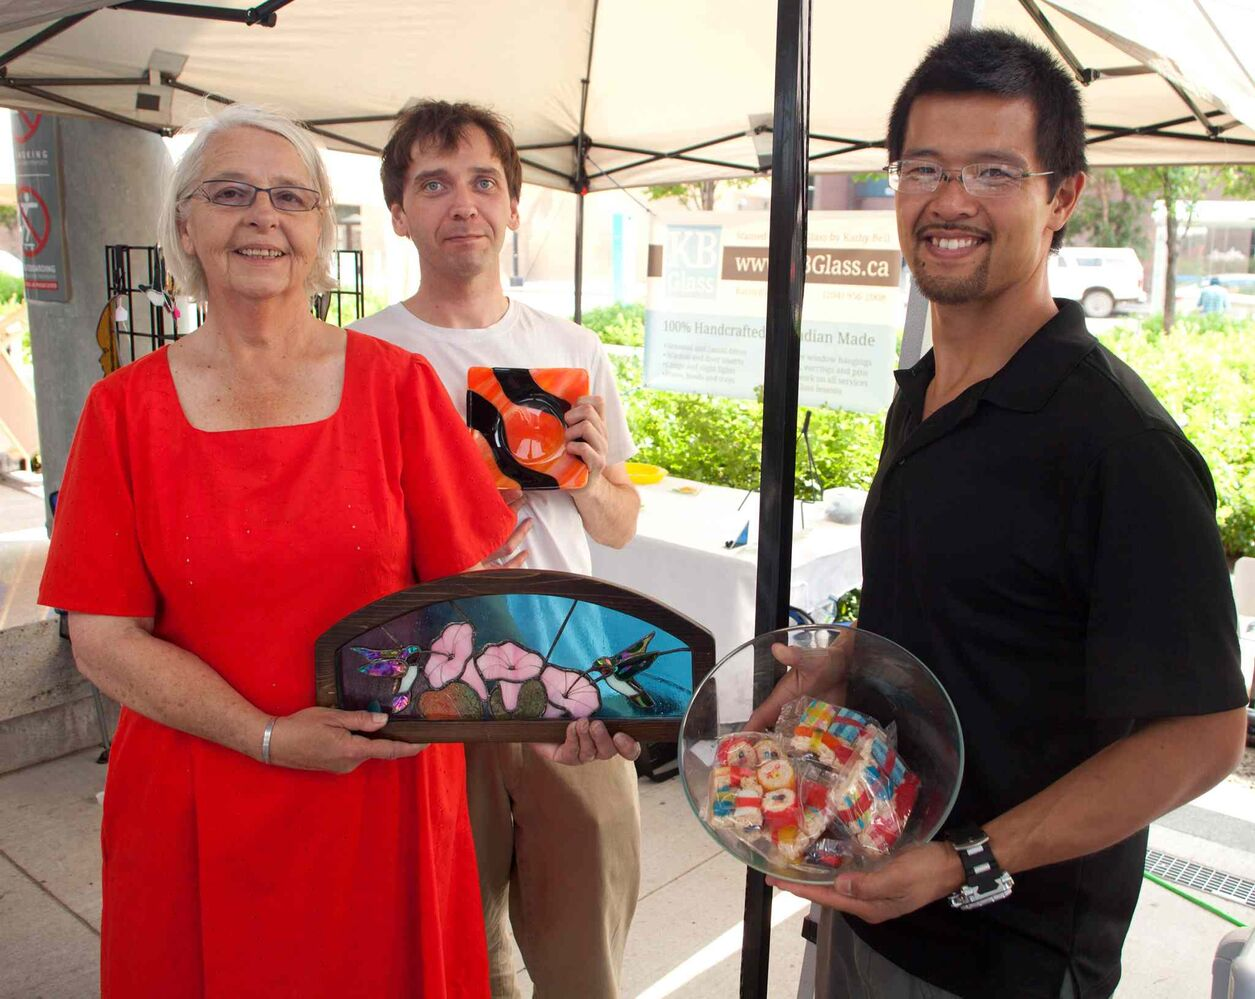 Unique products, baking and produce are available at the outdoor Downtown Farmer's Market at Manitoba Hydro Place. The market, organized by Downtown Winnipeg BIZ, is open from 10 a.m. to 3 p.m. every Thursday during the summer months, until mid-September. It then reverts to a monthly event indoors. Pictured, from left, are Kathy Bell, Joseph Dyer (kbglass.ca) and Jeff Poon (sweetcbakery.ca).